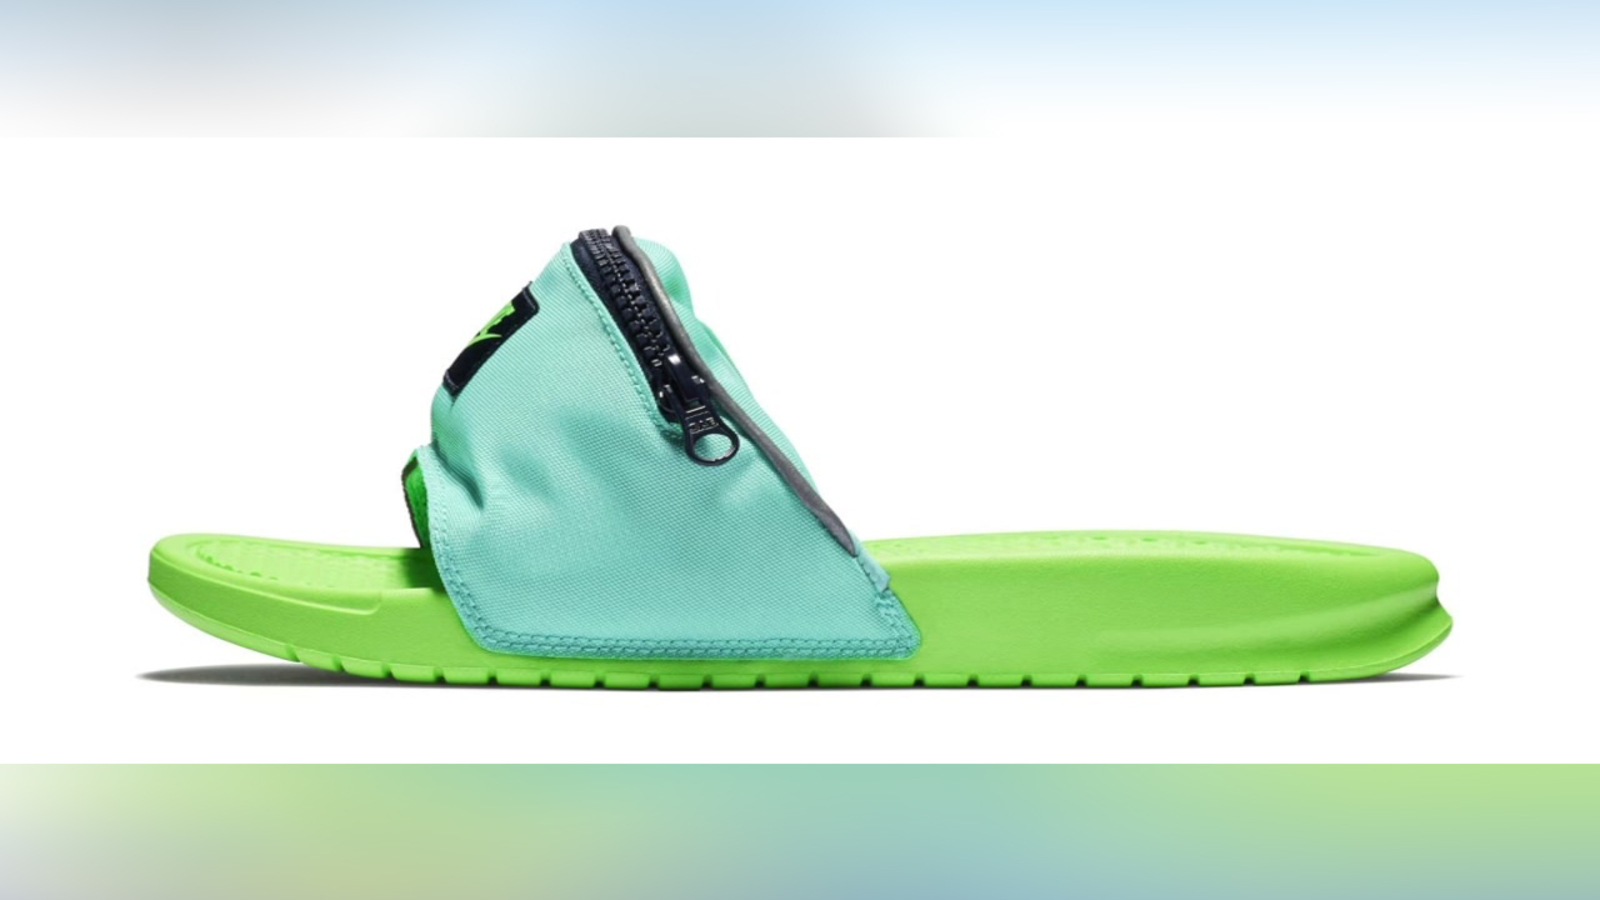 563d4e5b0 Cool for summer or fashion flop  Nike introduces fanny pack slides ...